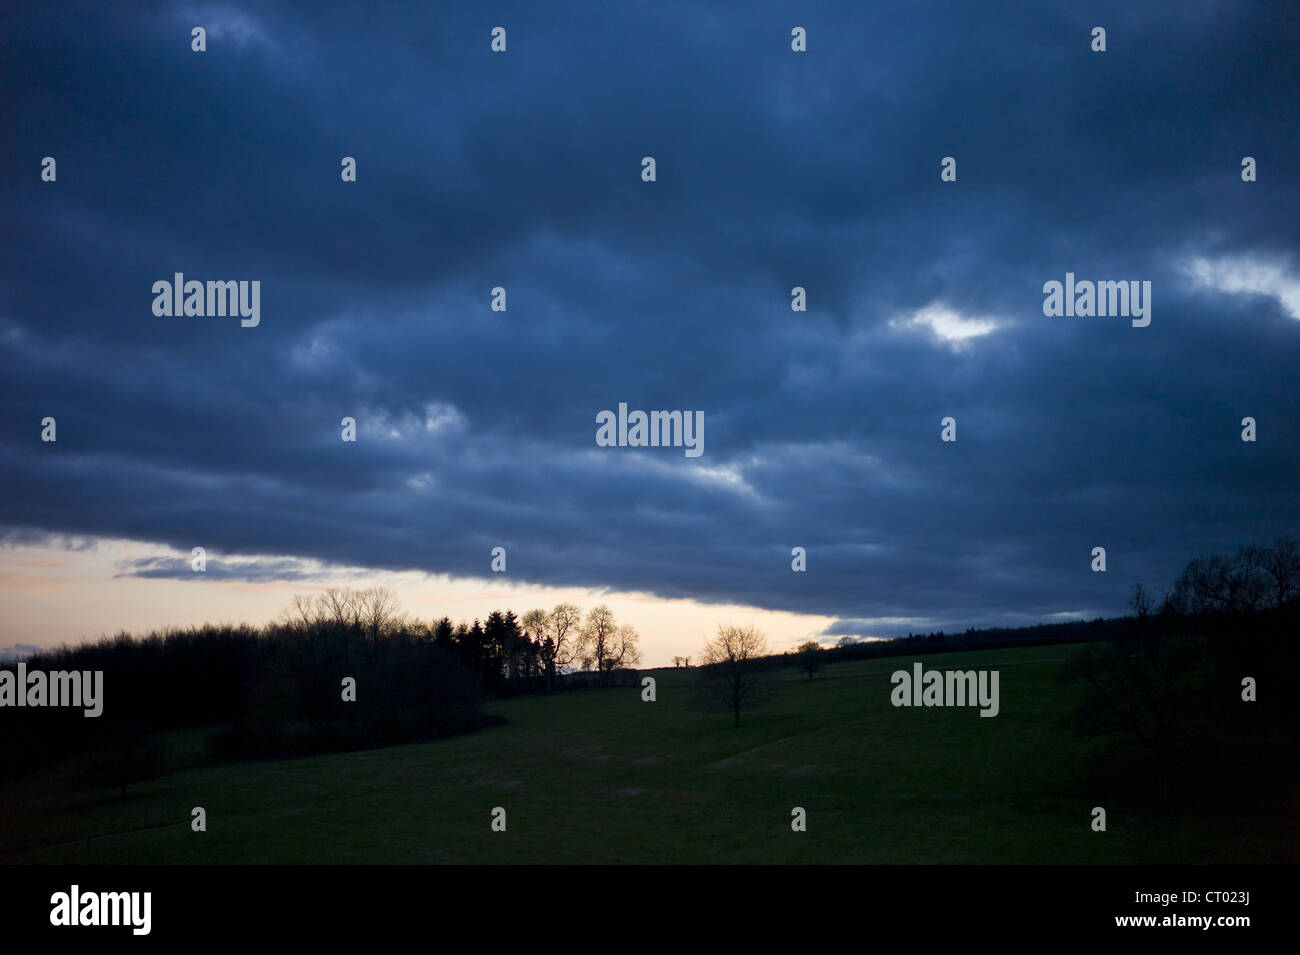 Rainstorm weather front above Swinbrook in the Cotswolds, Oxfordshire, UK - Stock Image